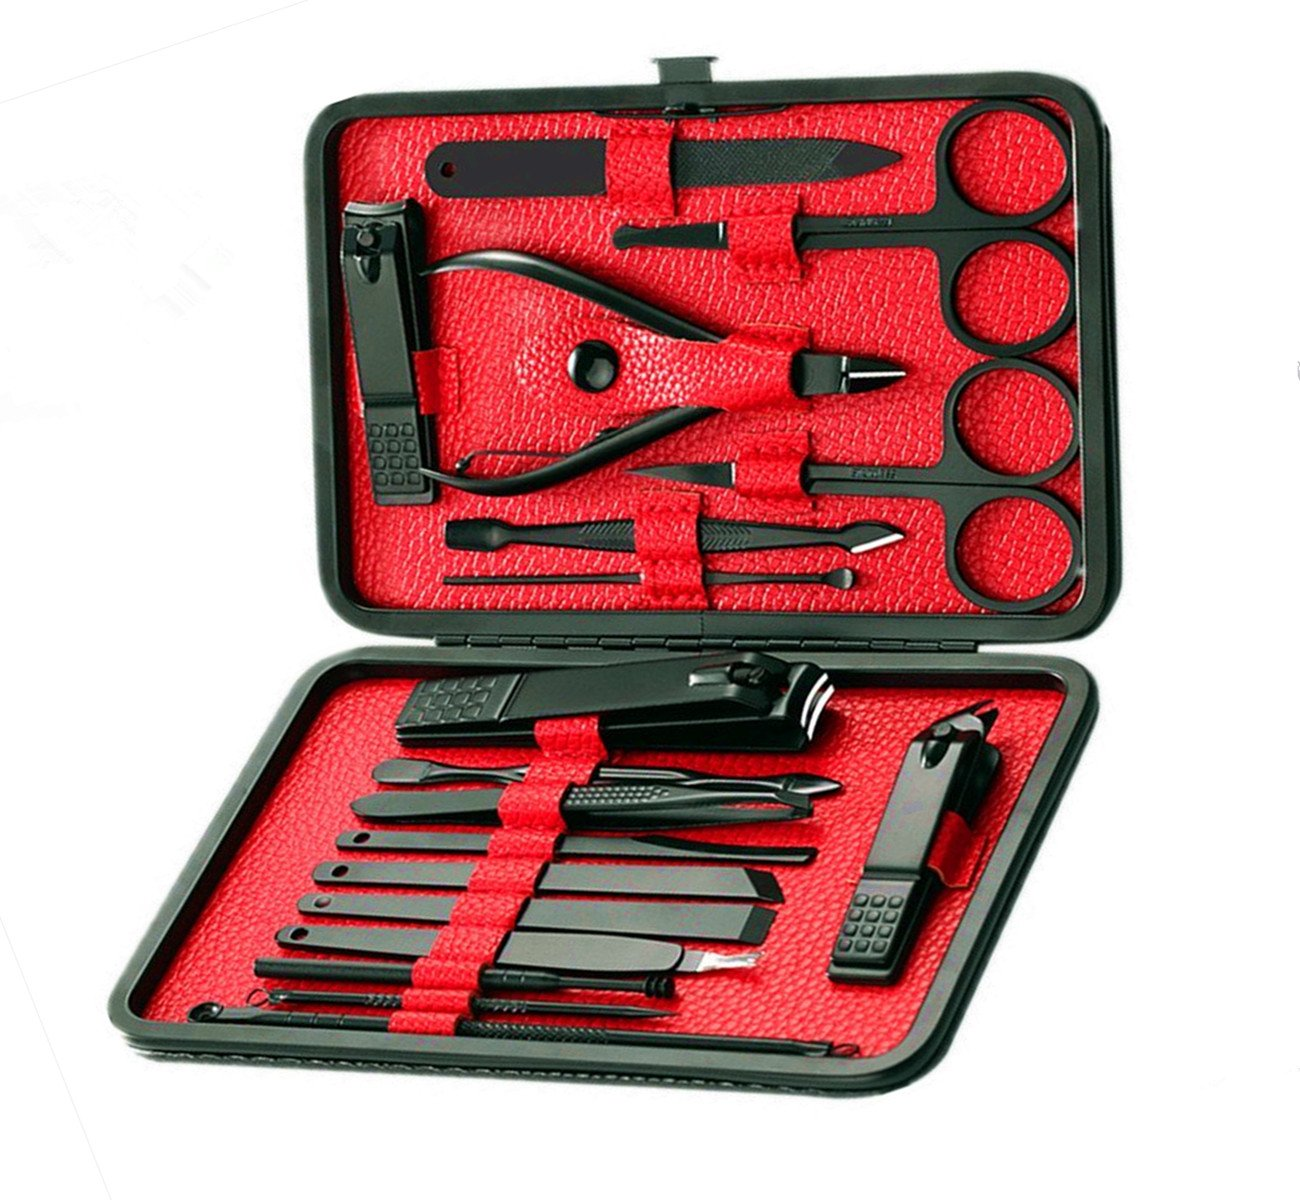 Cammyllc Updated 18 In 1 Mens Grooming Kit Manicure Set Stainless Steel Professional Pedicure Kit Nail Scissors with Black Leather Travel Case (Black & Red)